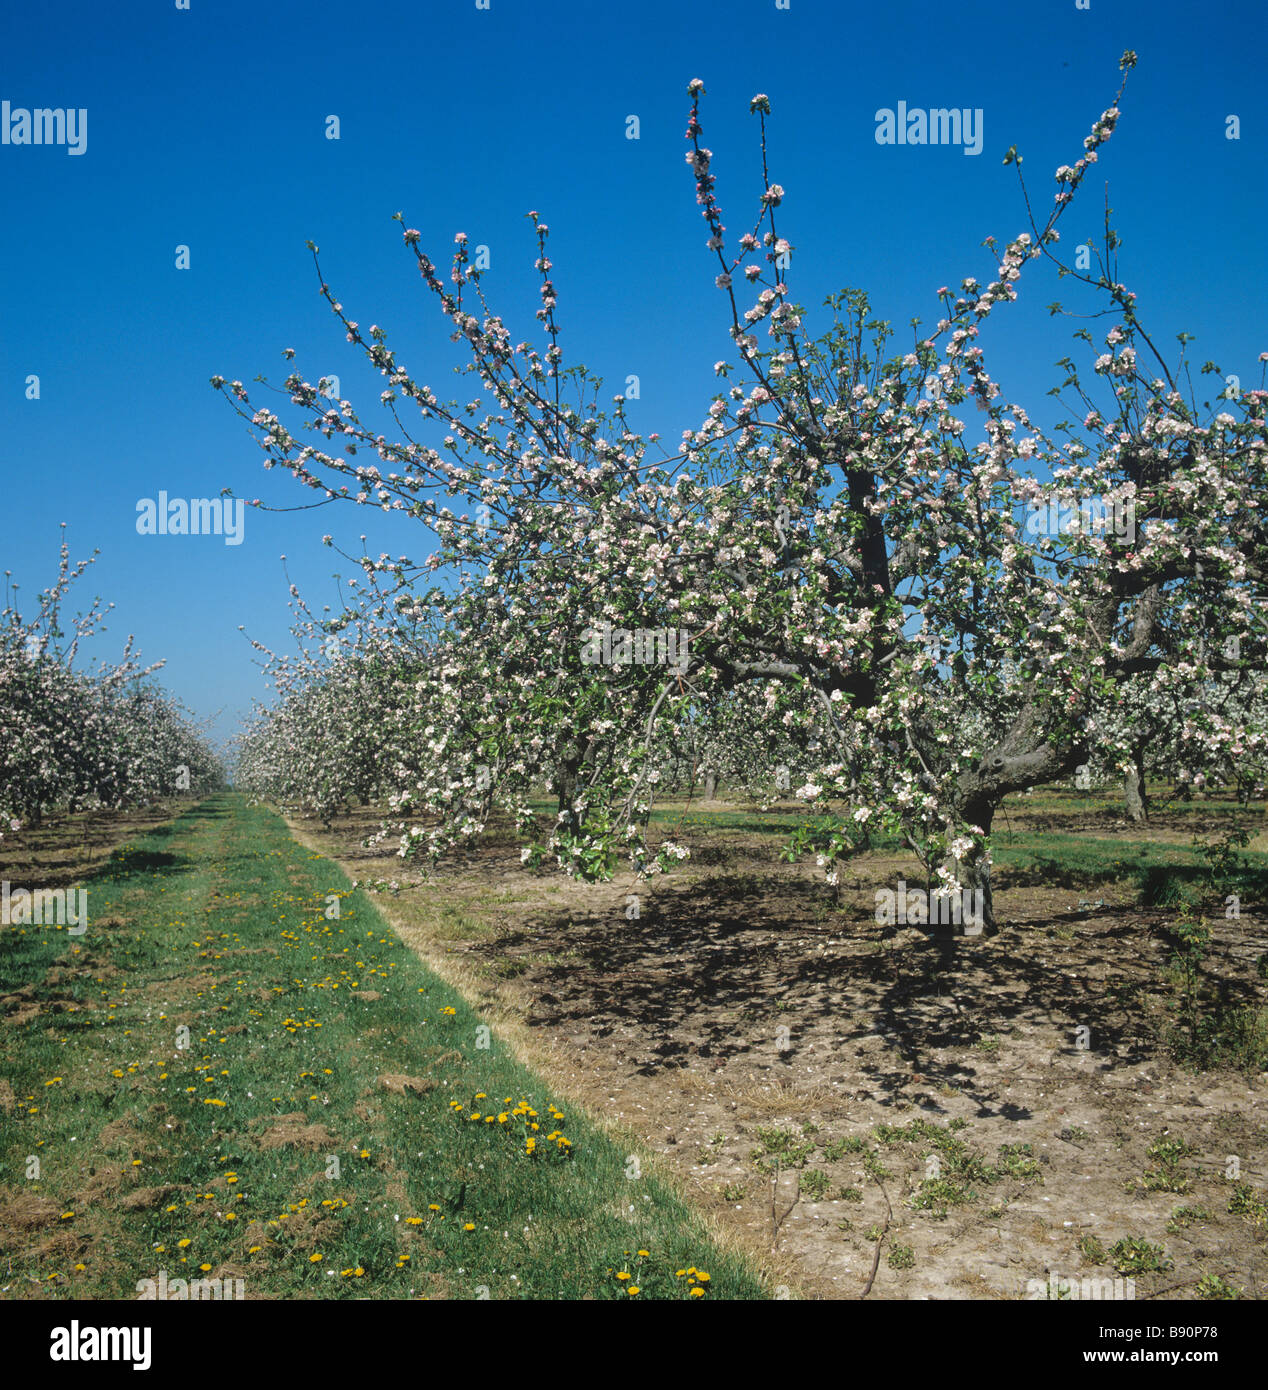 Apple orchard with mature trees in full blossom Kent - Stock Image